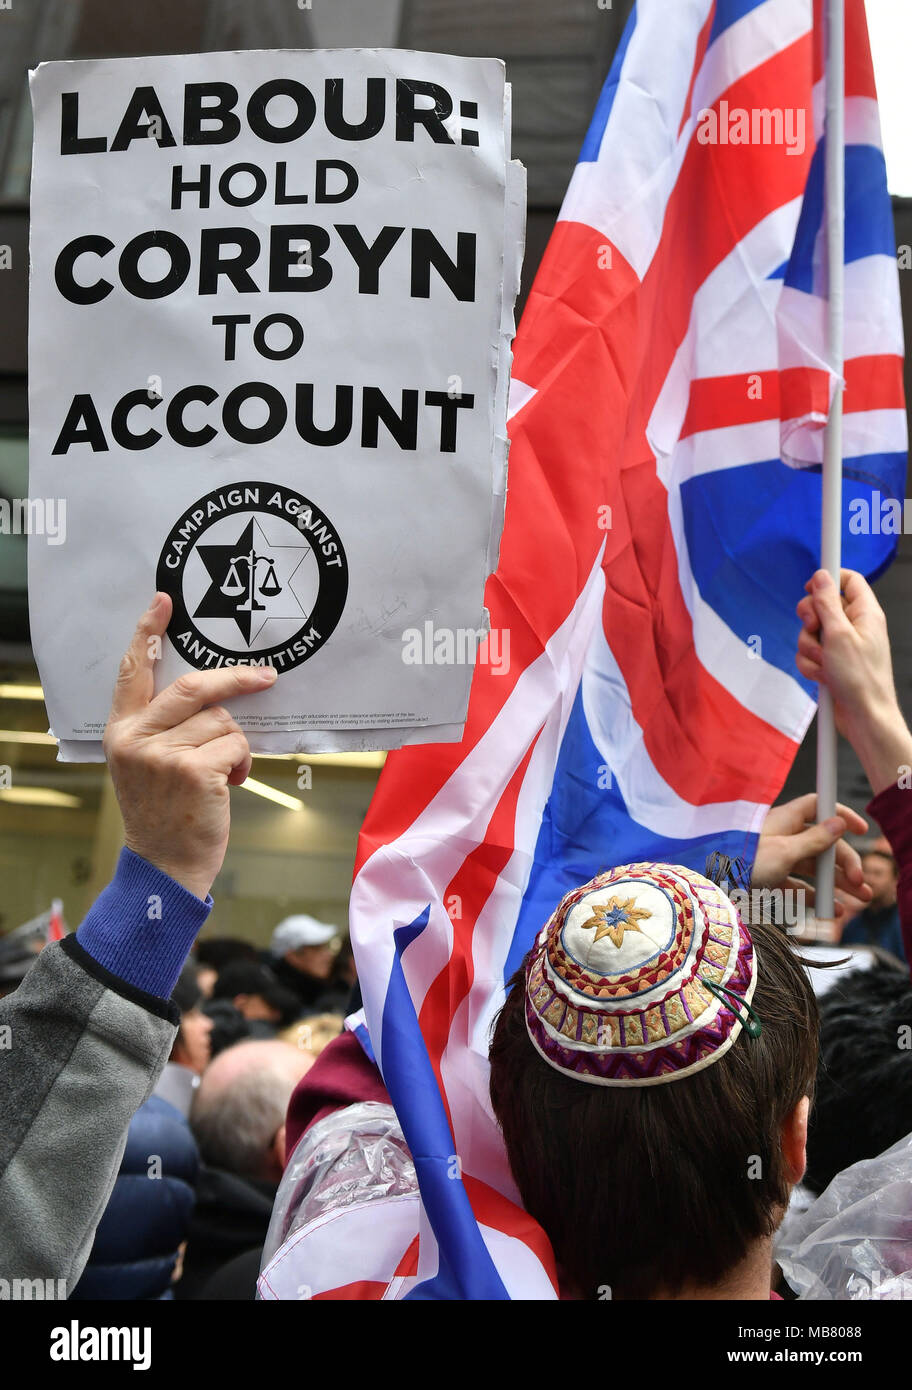 Protestors during the demonstration organised by the Campaign Against Antisemitism outside the Labour Party headquarters in central London, against alleged prejudice in the Labour Party, amid a row over the party's handling of claims of anti-semitism. - Stock Image